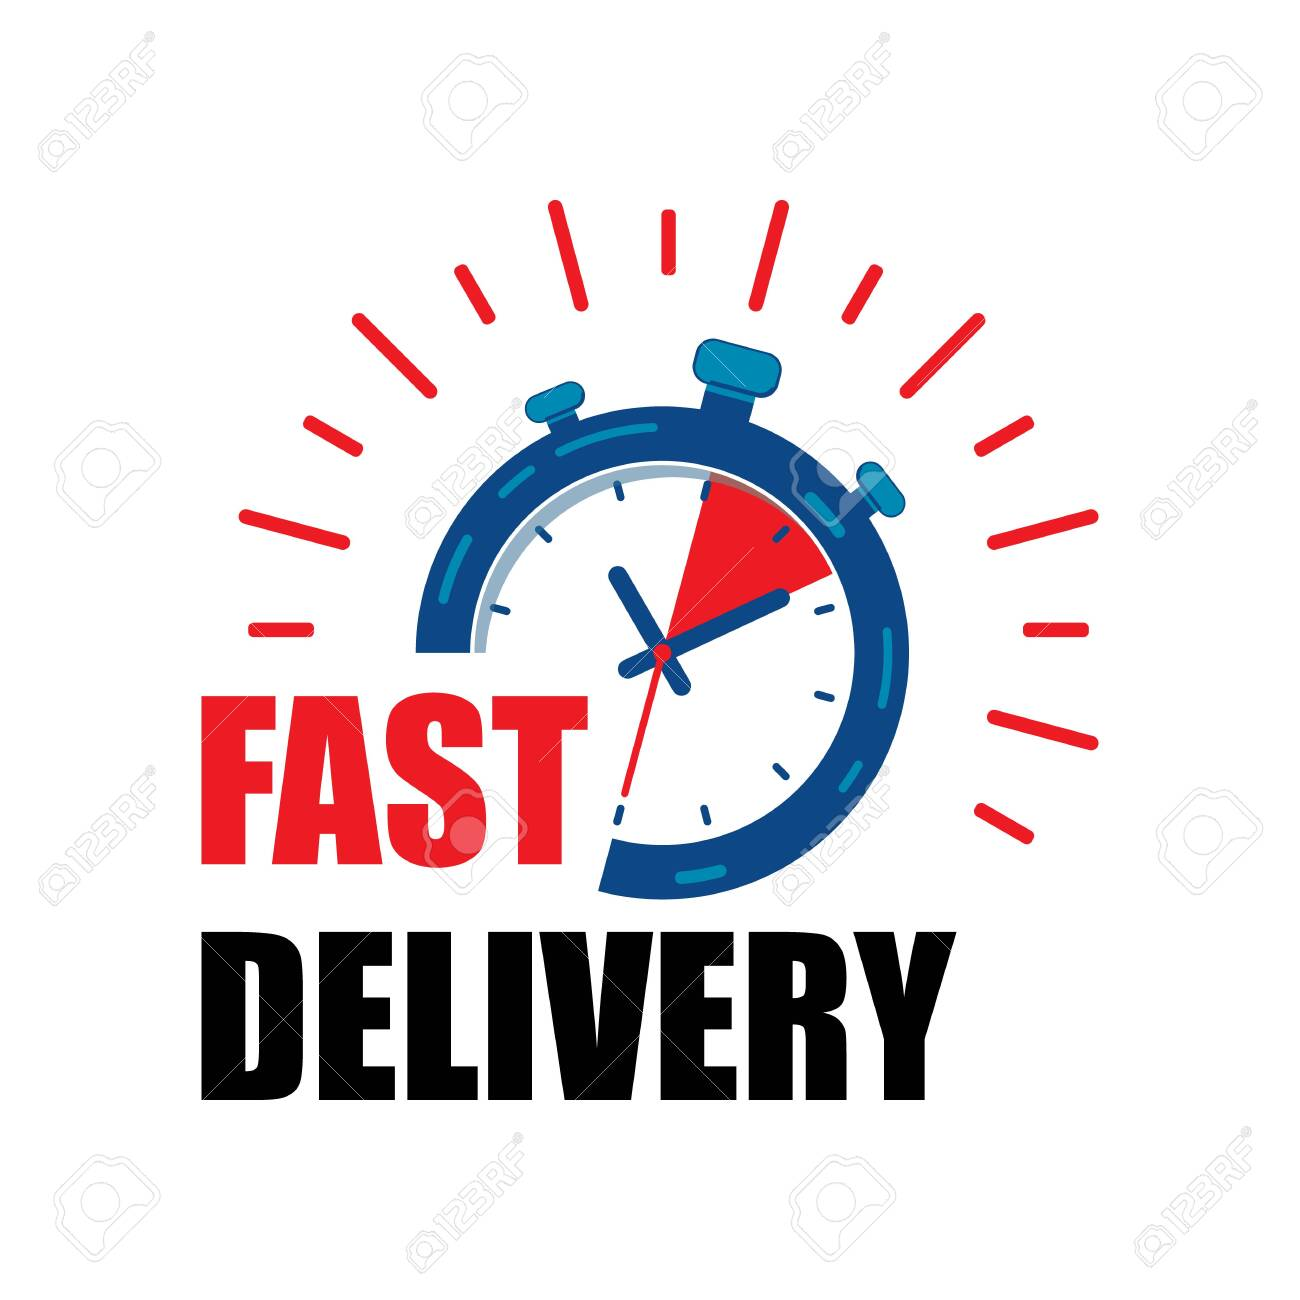 Fast delivery watch service with red arrows. Express fast delivery service stopwatch icon vector eps10. fast Delivery watch. - 120264684